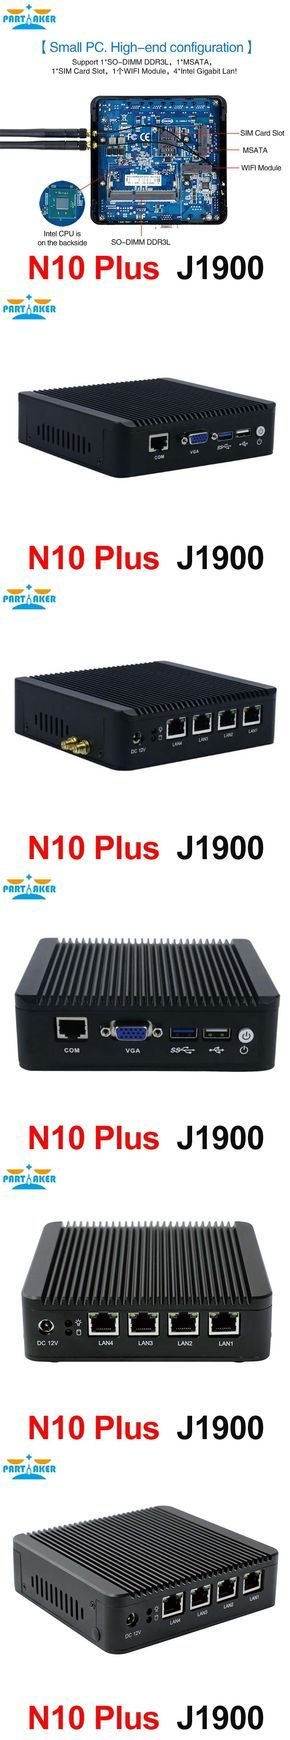 Partaker N10 Plus mini server mini pc j1900 quad core CPU 4 intel lan firewall vpn router support linux pfsense OS and 3G/4G